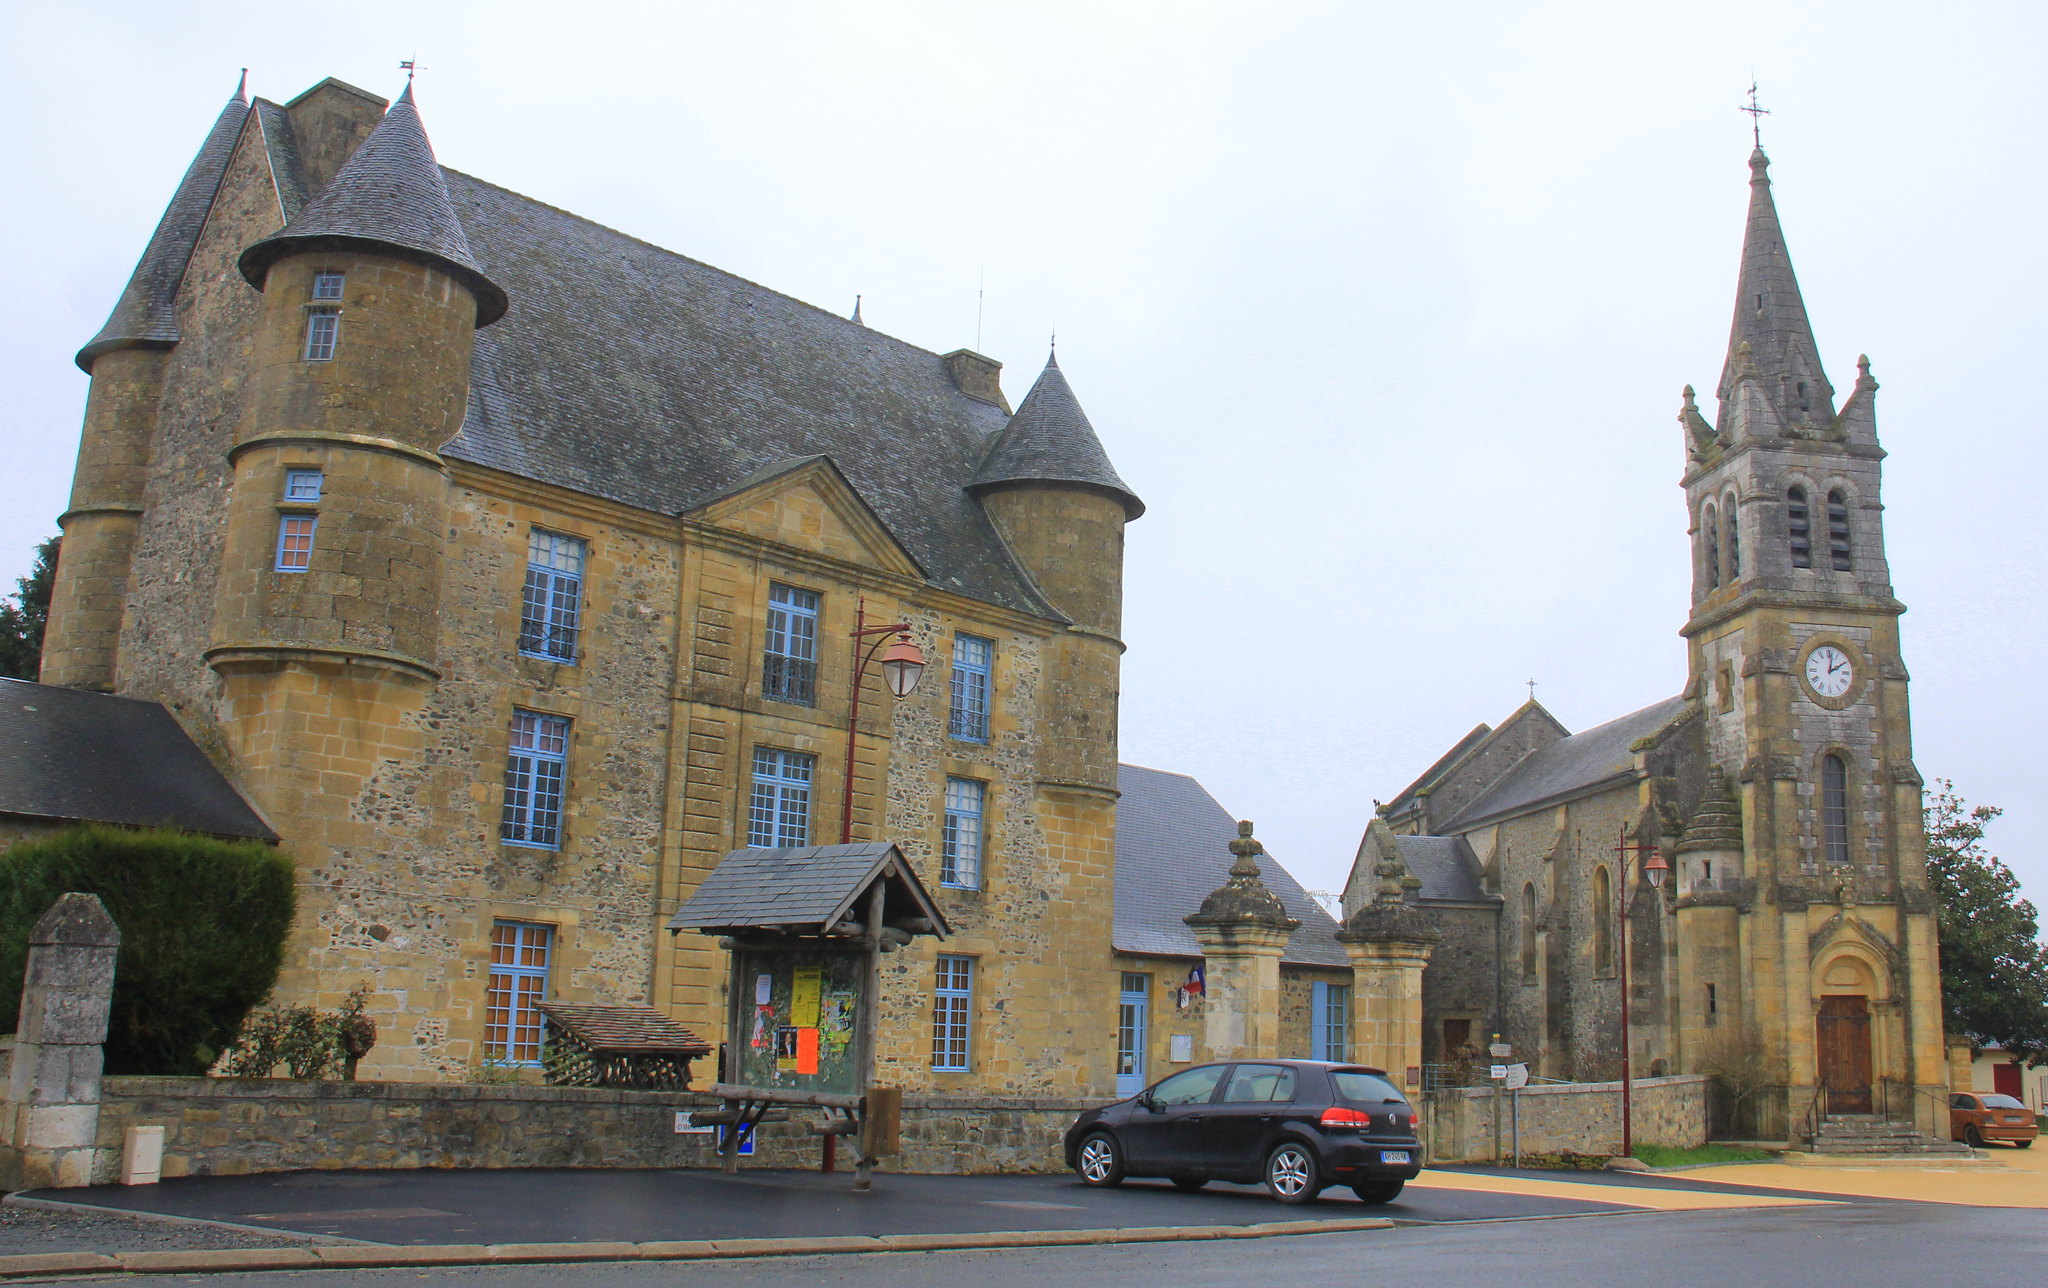 The bastides or fortified villages of Dordogne